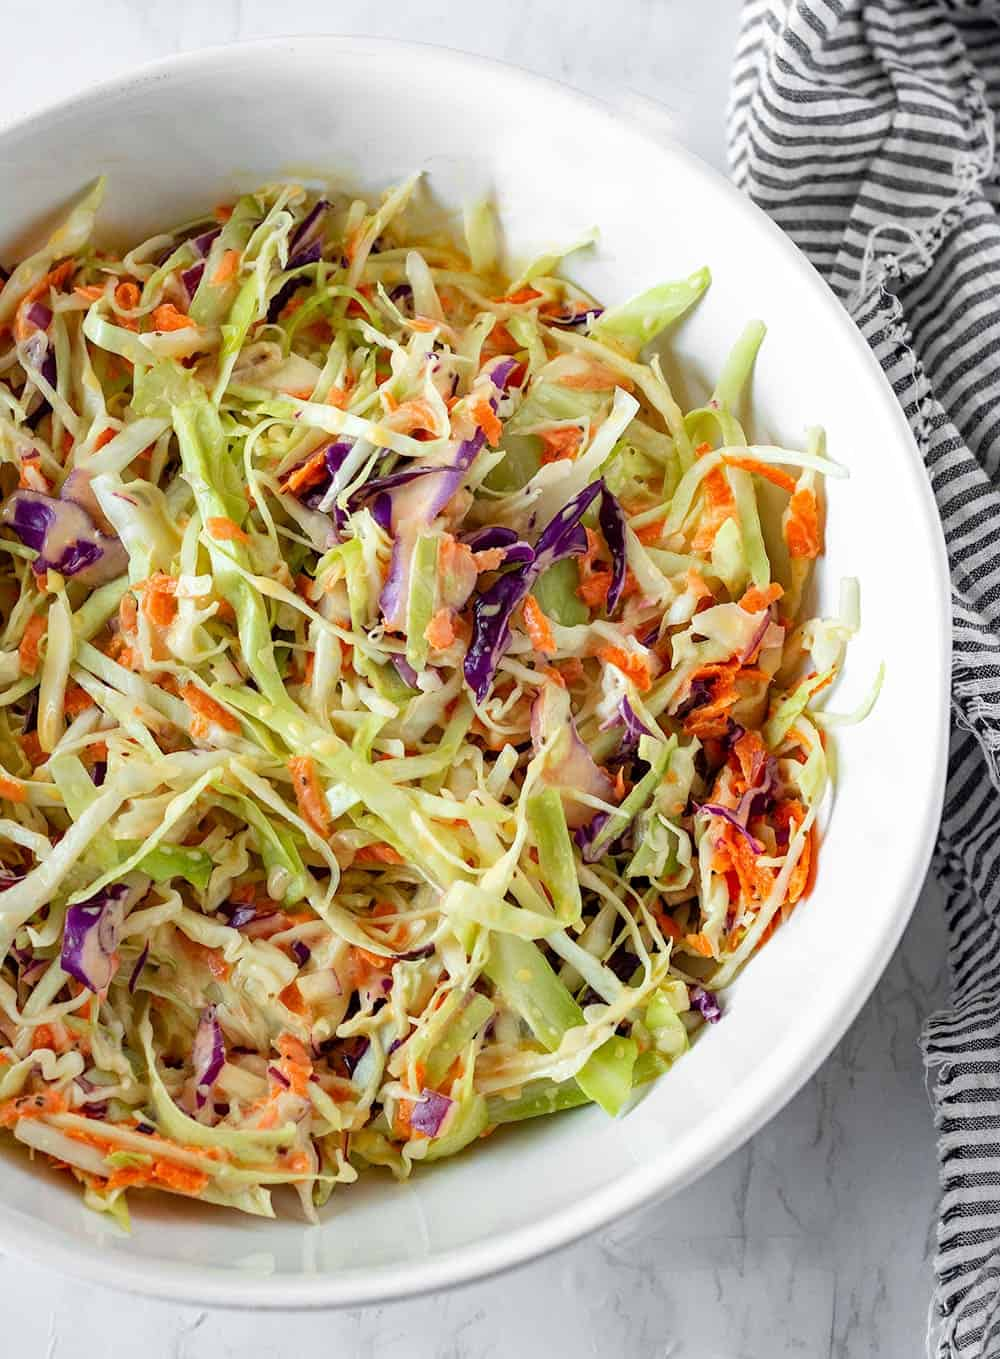 vegan coleslaw recipe with green cabbage, red cabbage, carrots shredded with a creamy vegan coleslaw dressing in a large white bowl